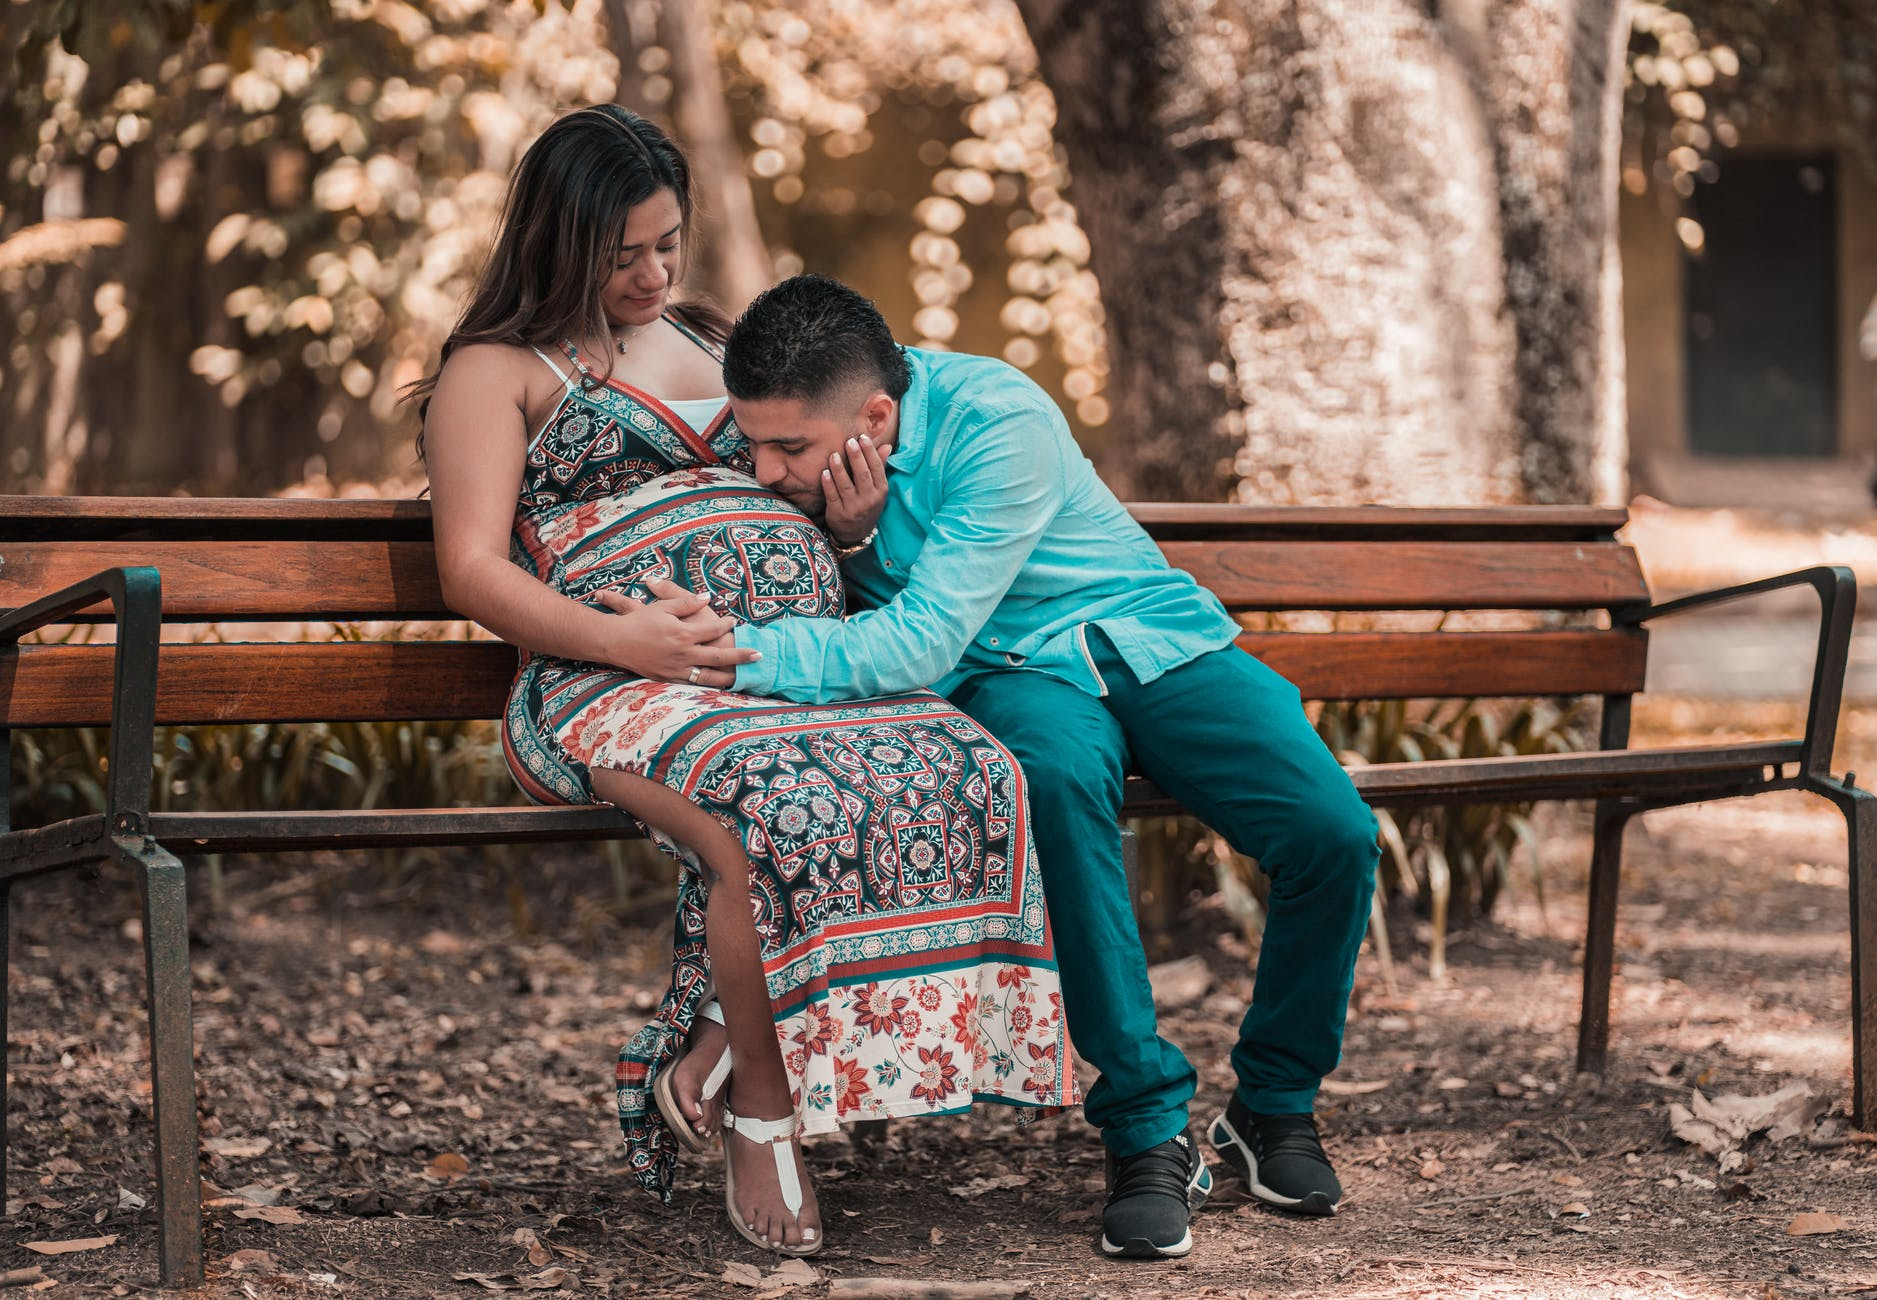 7 Tips For Purchase Maternity Dress in Pregnancy